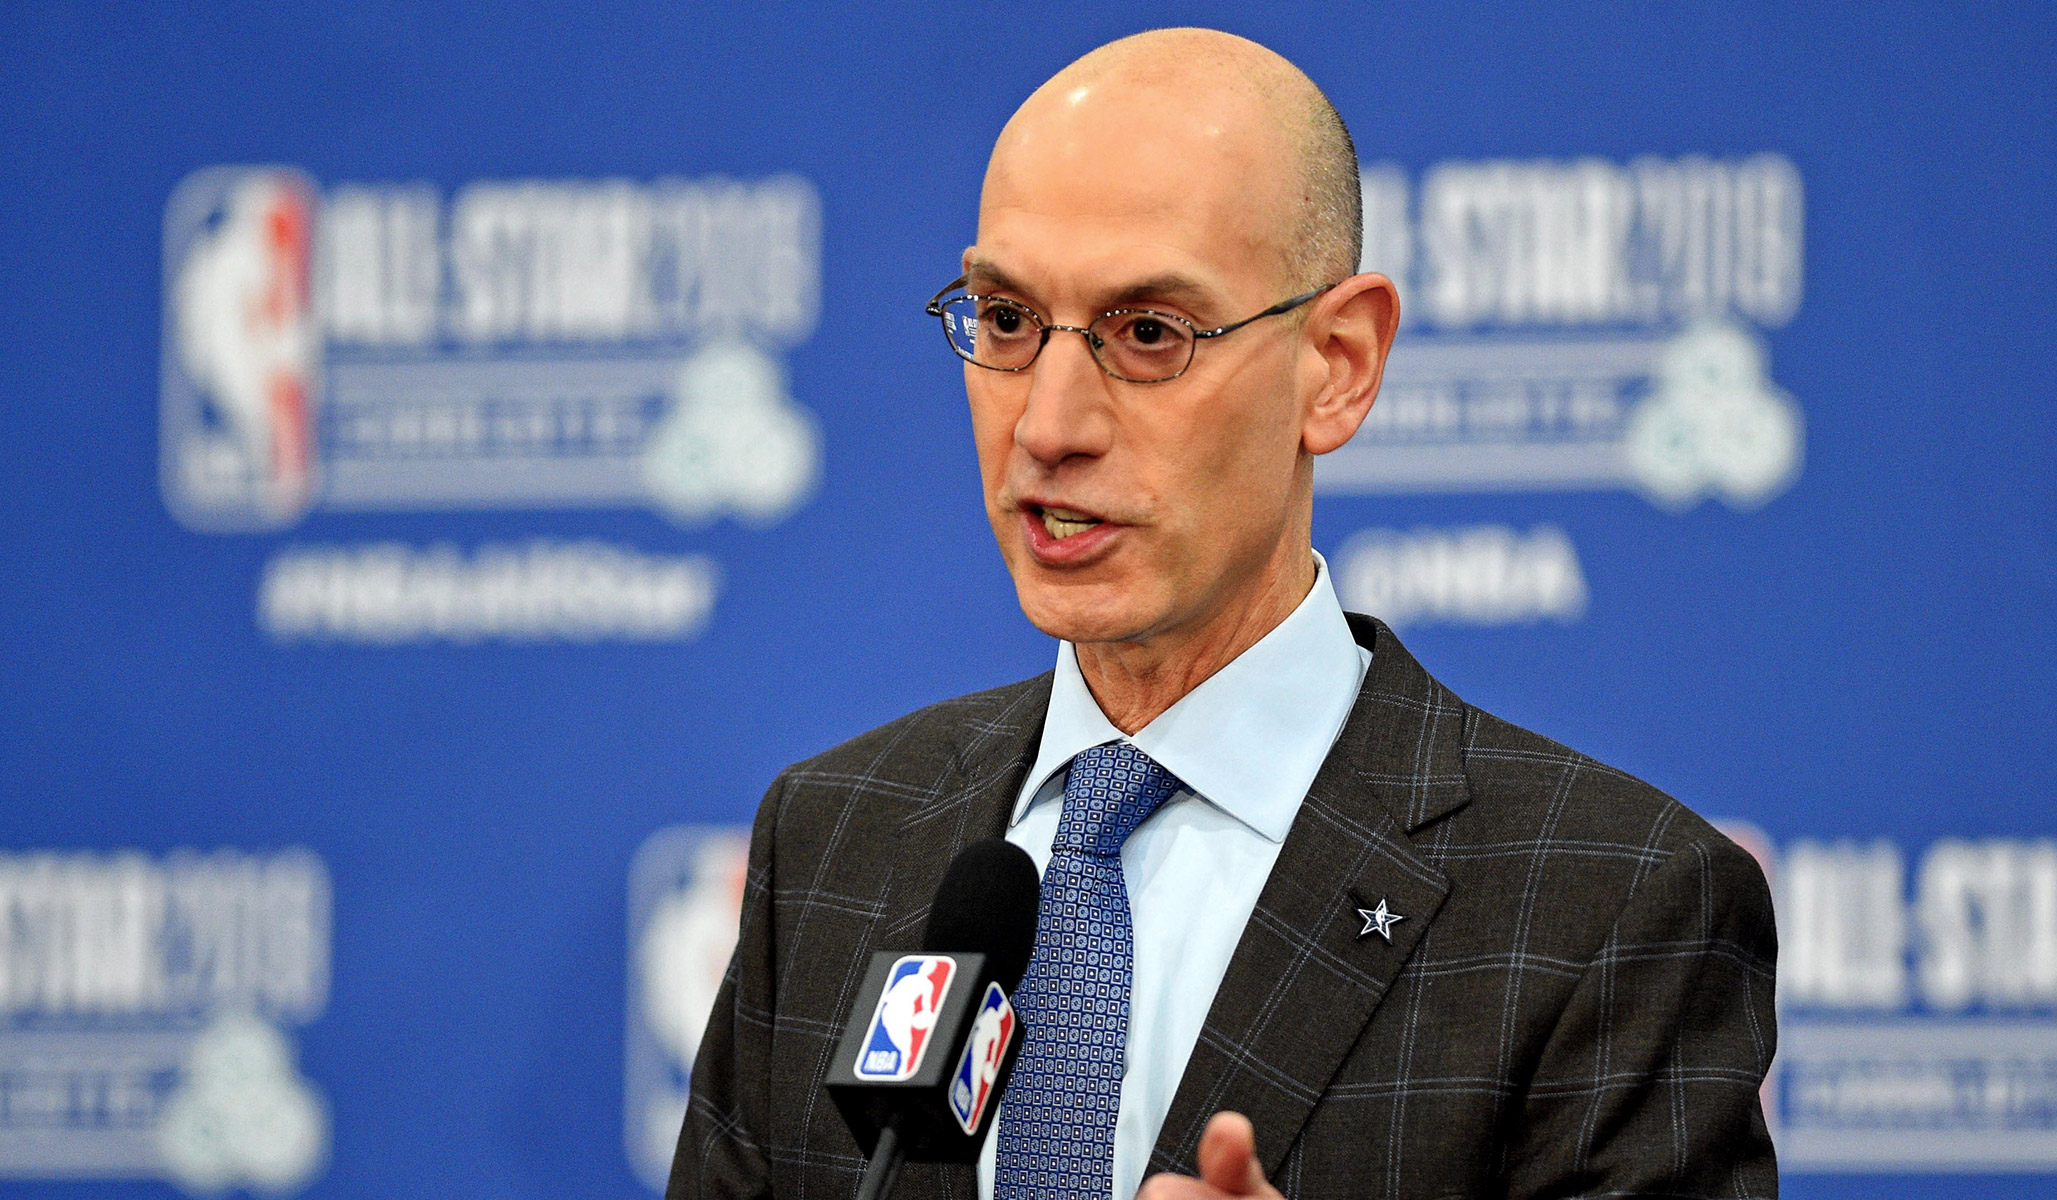 The NBA's Adam Silver on China: 'We Have No Choice but to Engage'